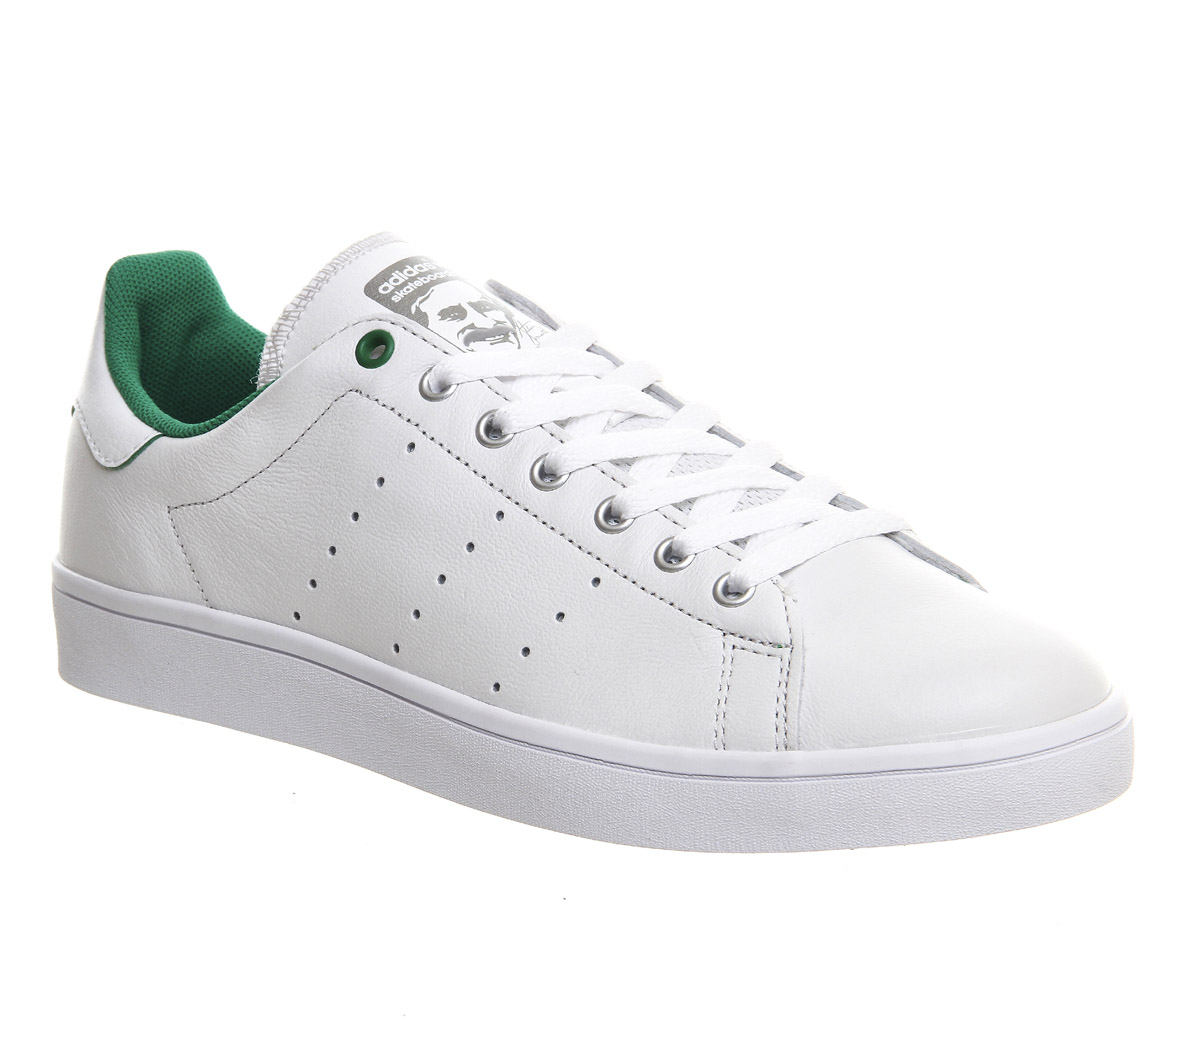 Adidas Stan Smith Gs Core White Green